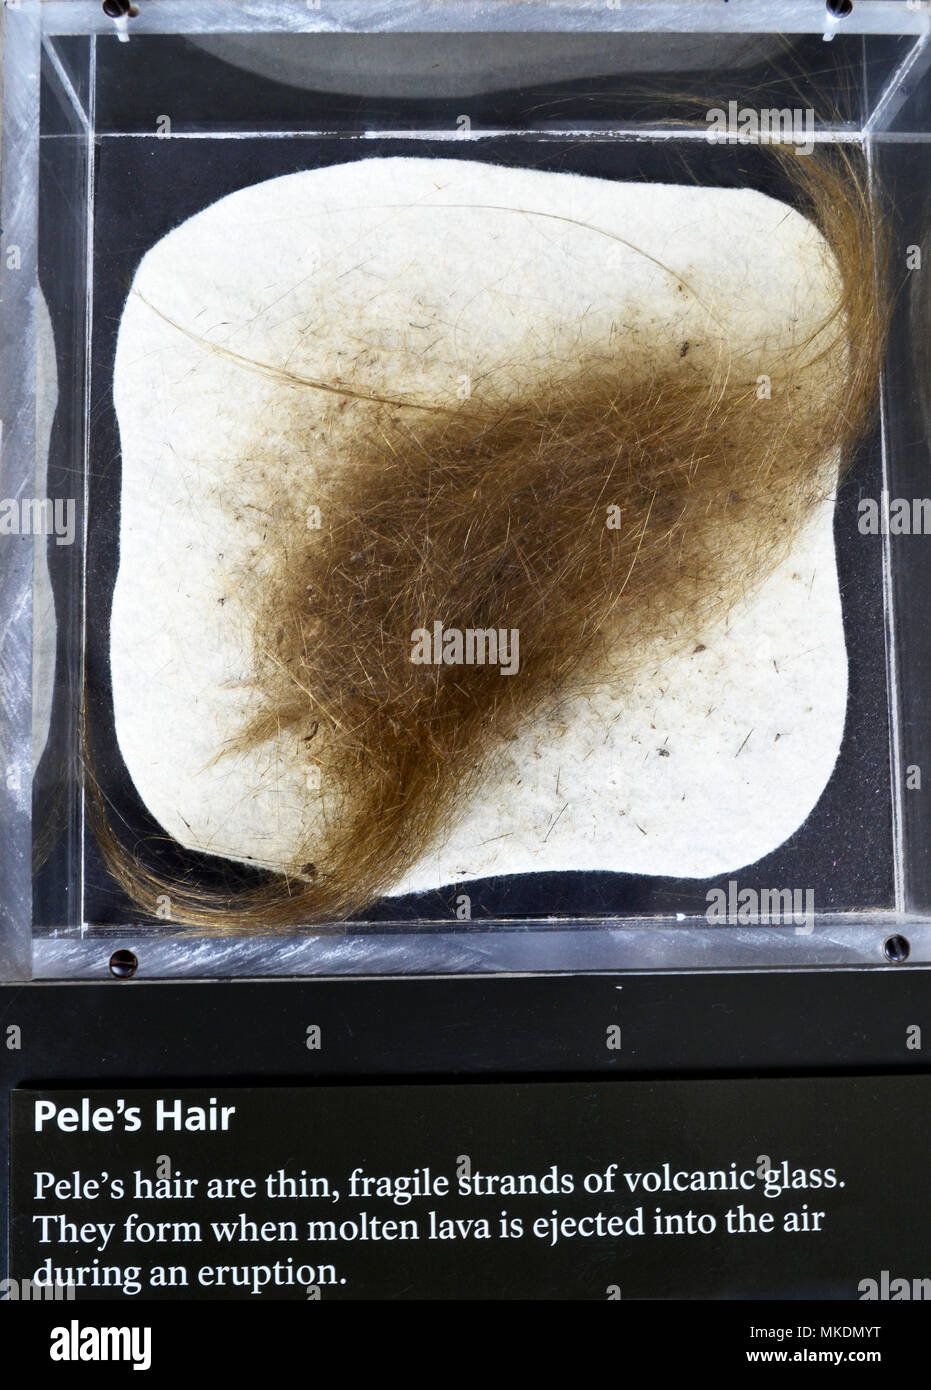 Peles Hair. Strands of volcanic glass that form when molten lava is ejected into the air during an eruption. Stock Photo